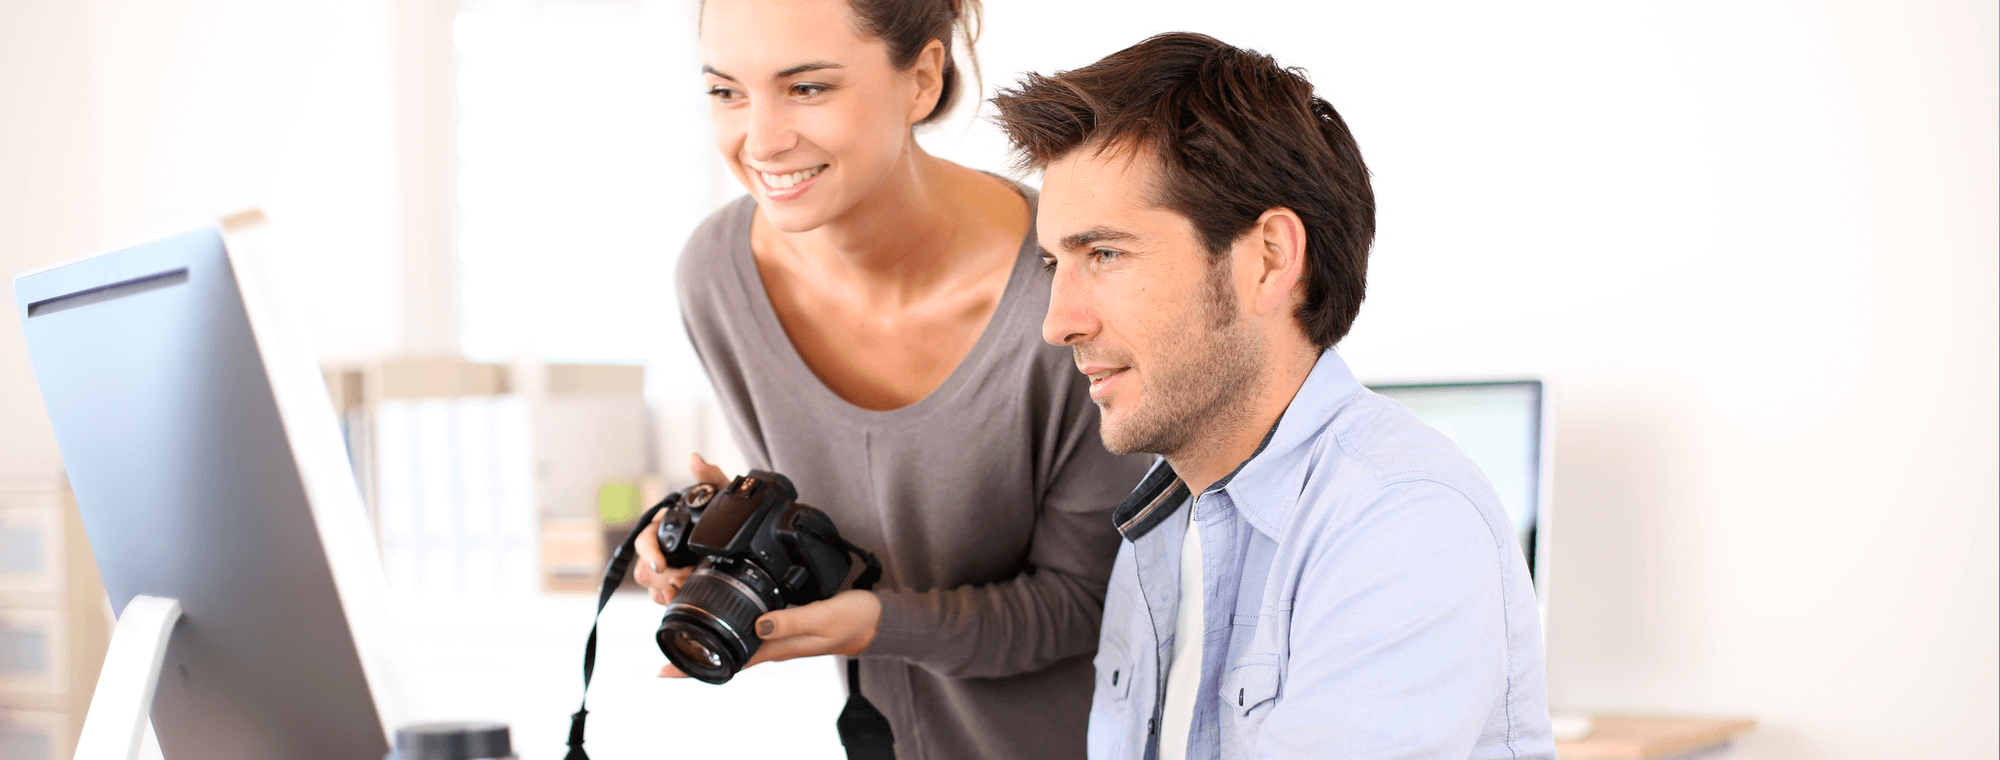 How to Prepare Your Home for a Photo Shoot